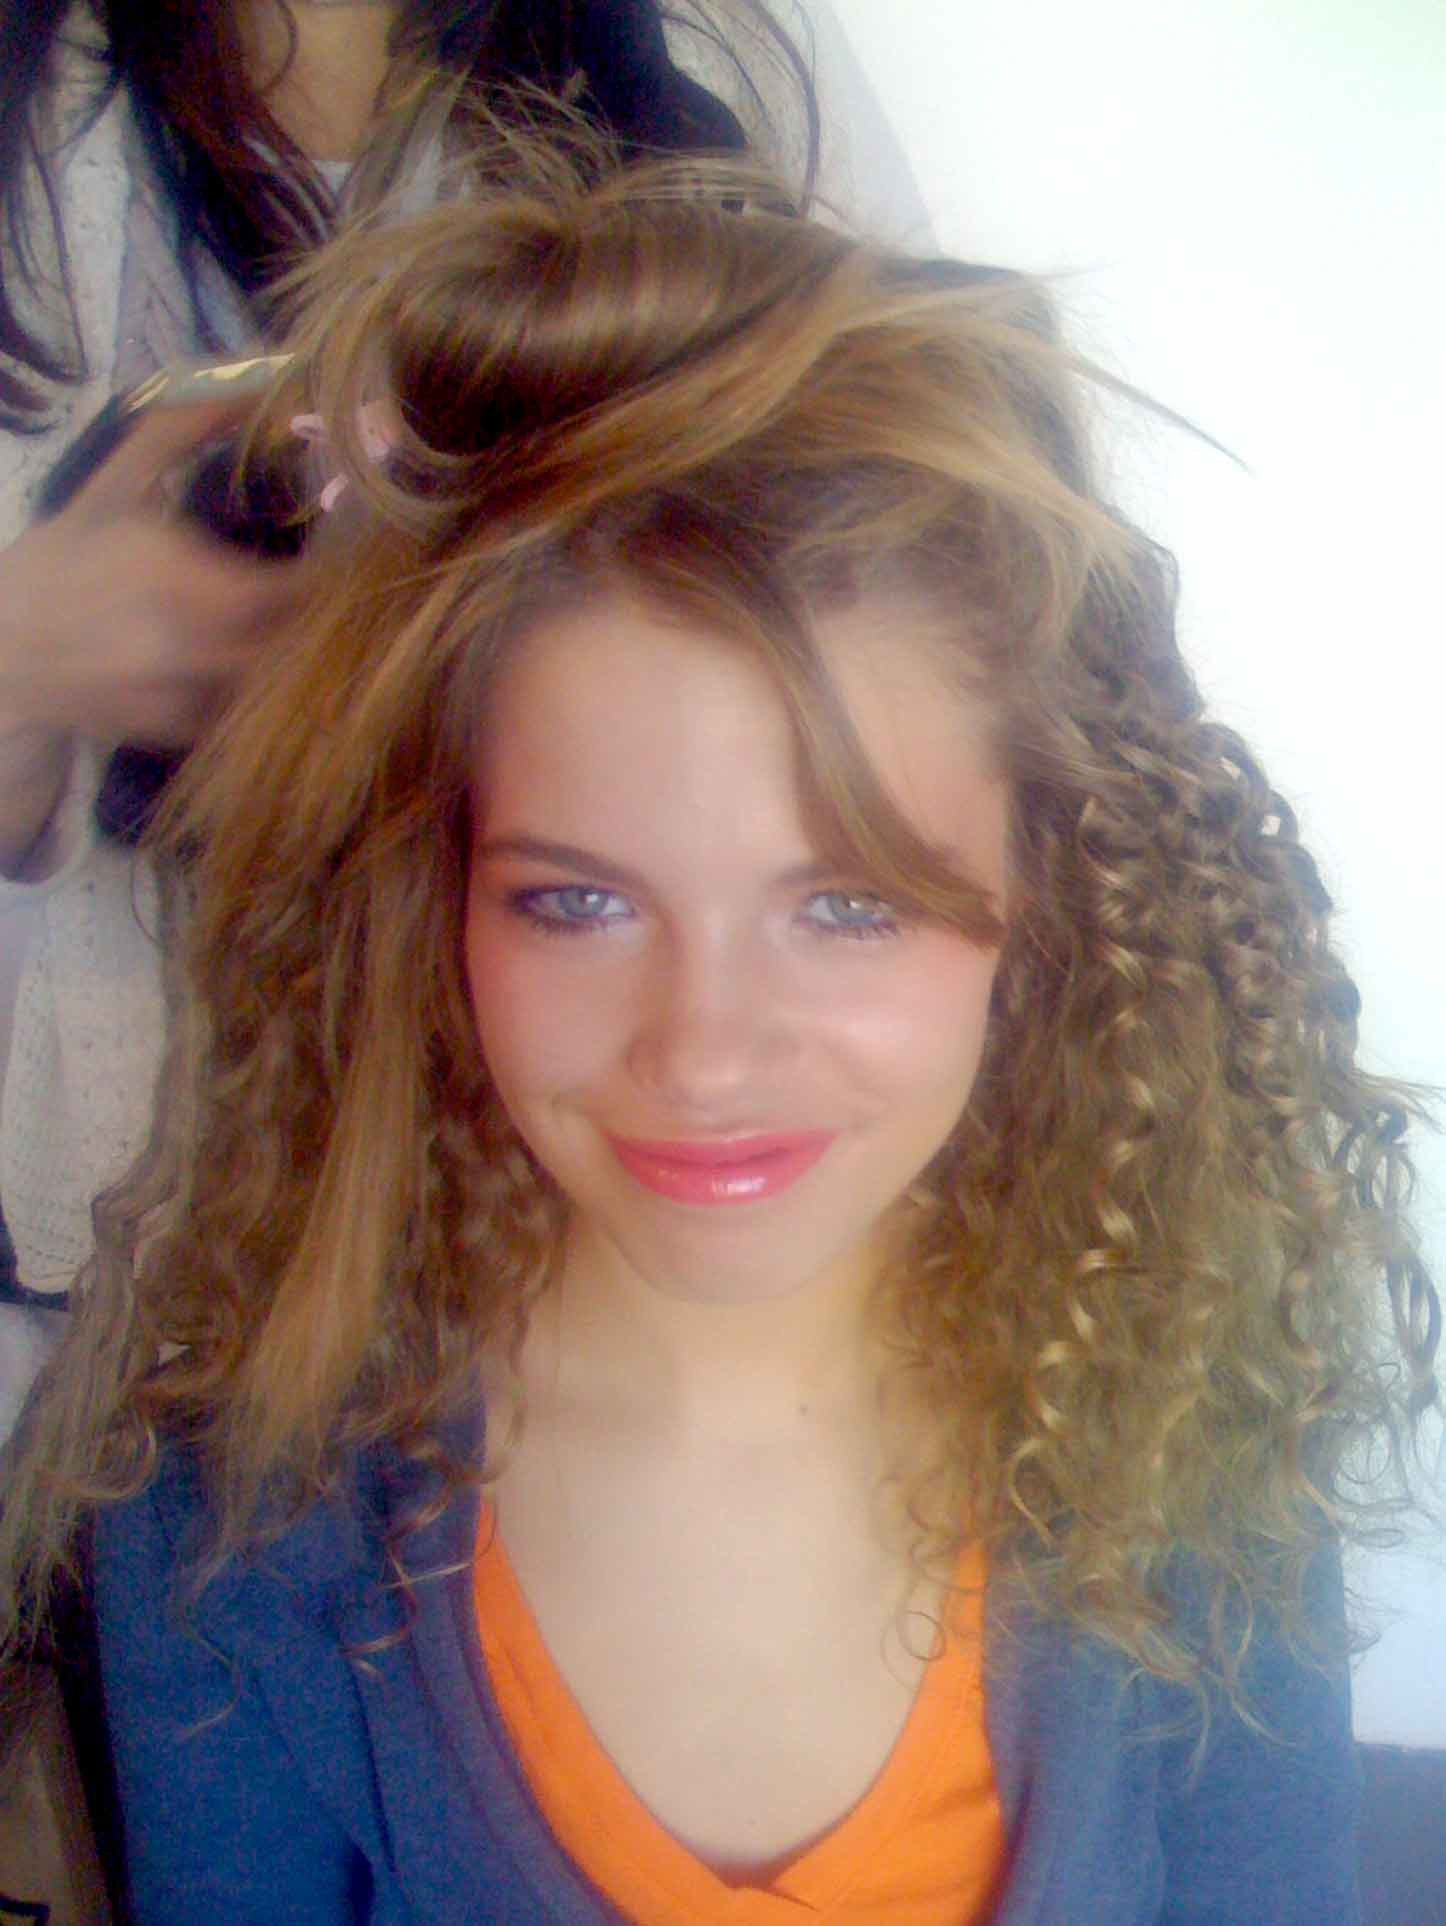 Hailey Clauson in hair and makeup for Genlux shoot